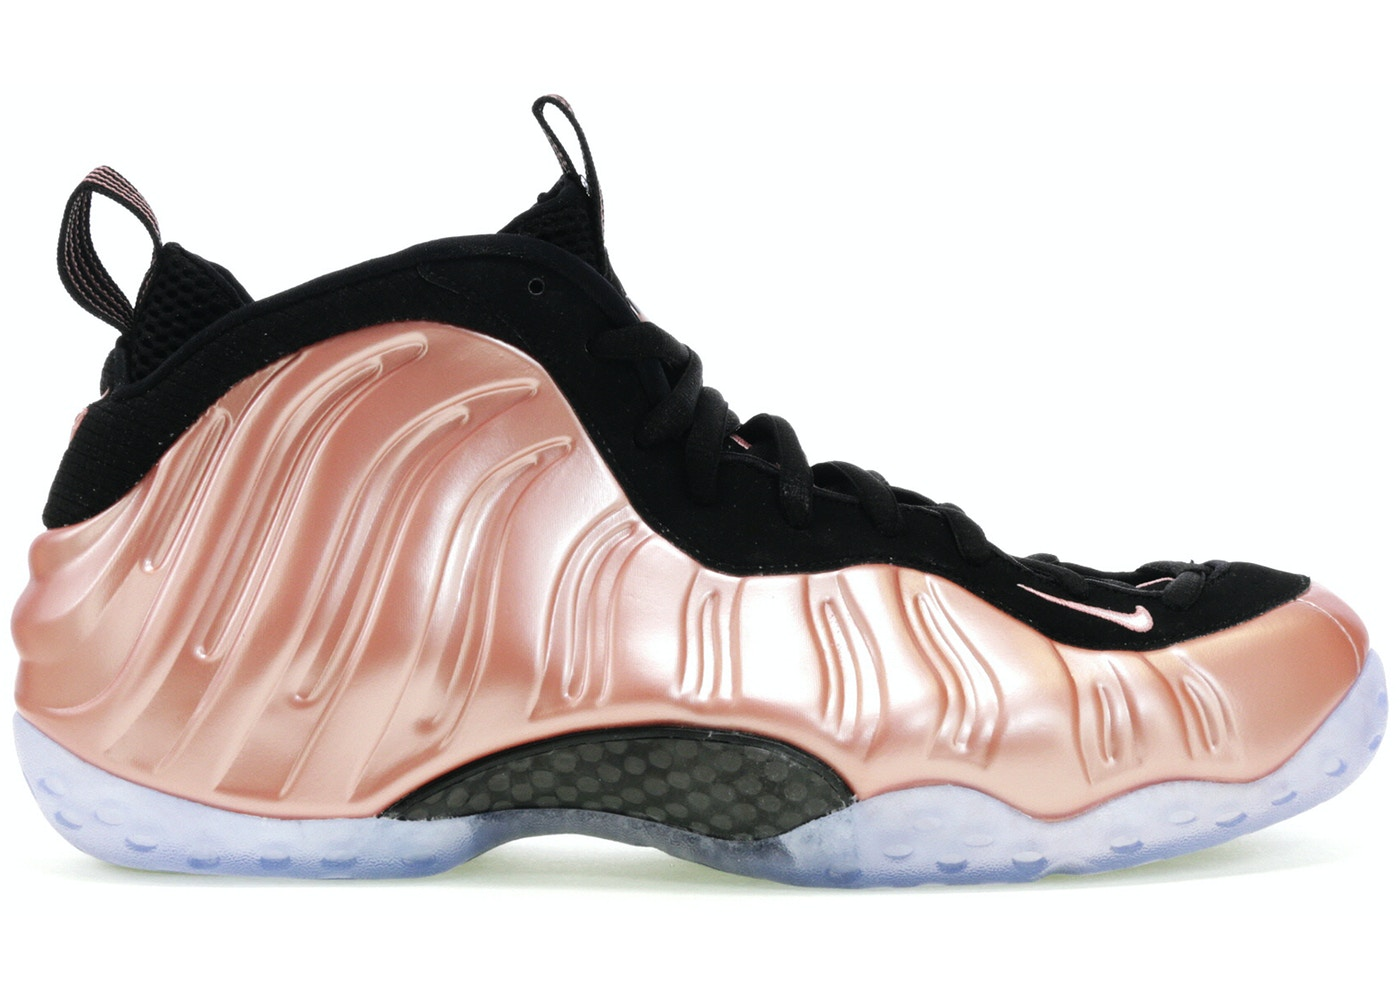 4f4056075f5f Air Foamposite One Rust Pink - 314996-602